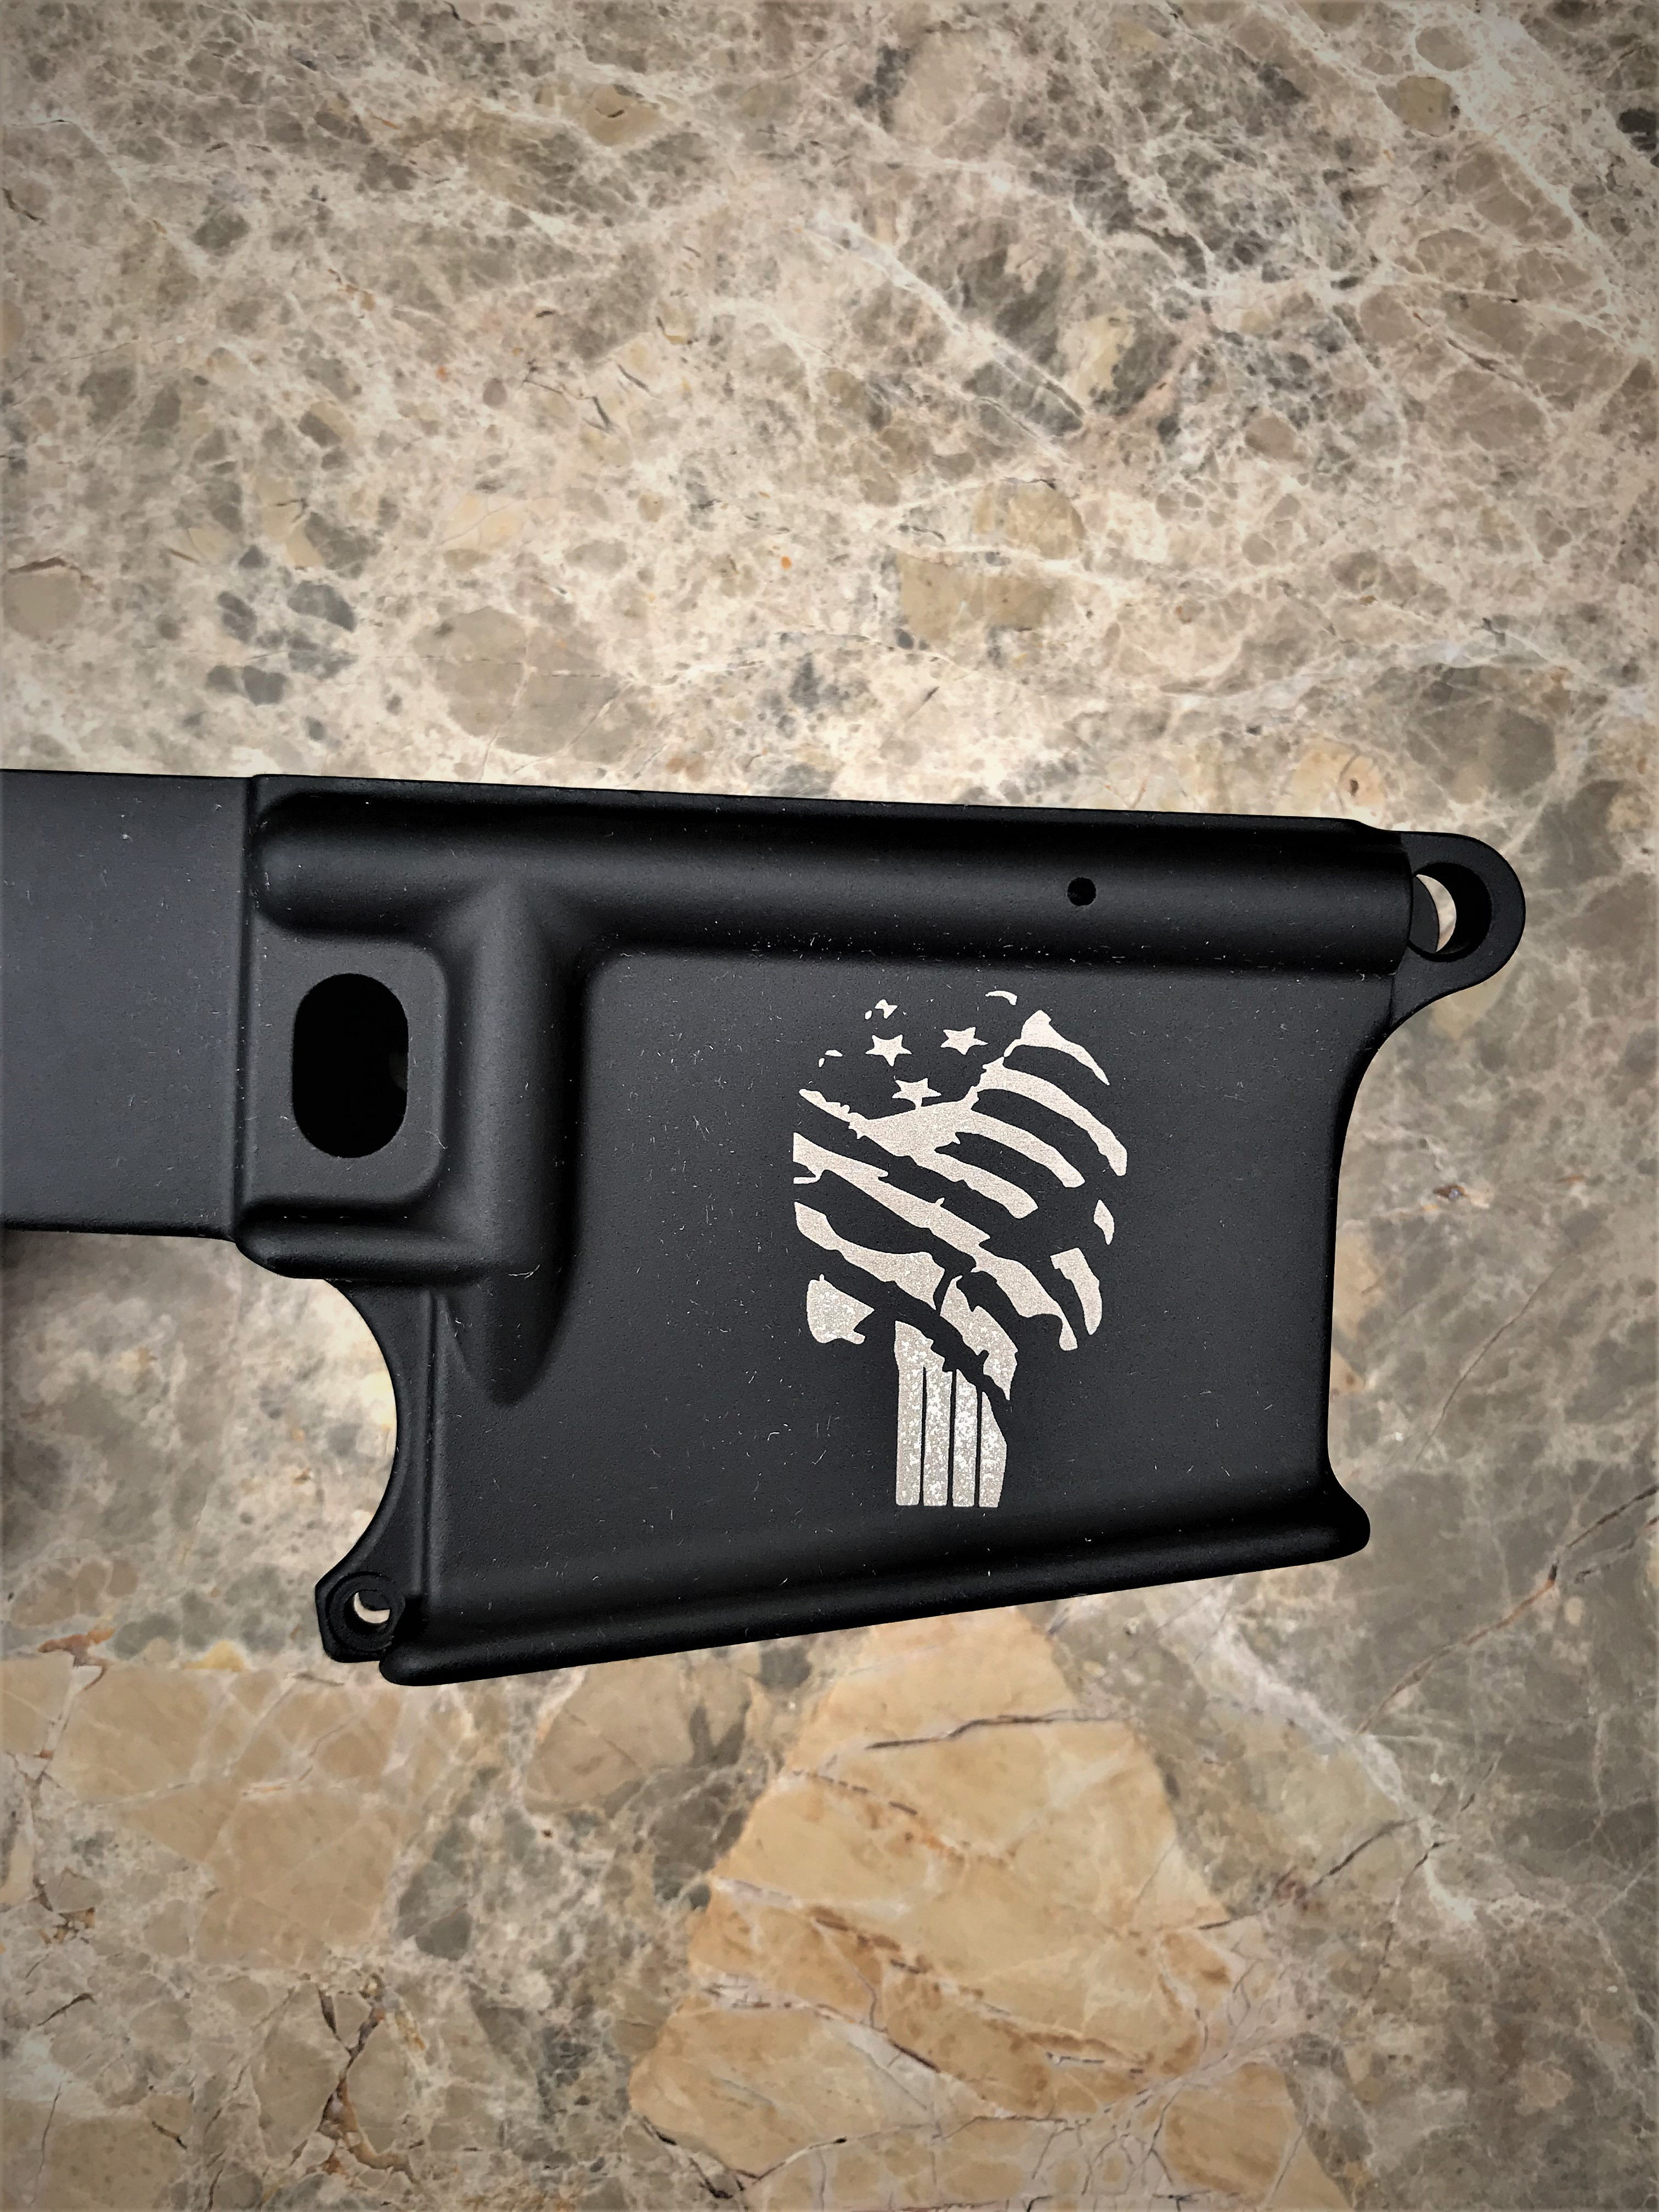 AR-15 Tattered Flag Punisher 80% Lower